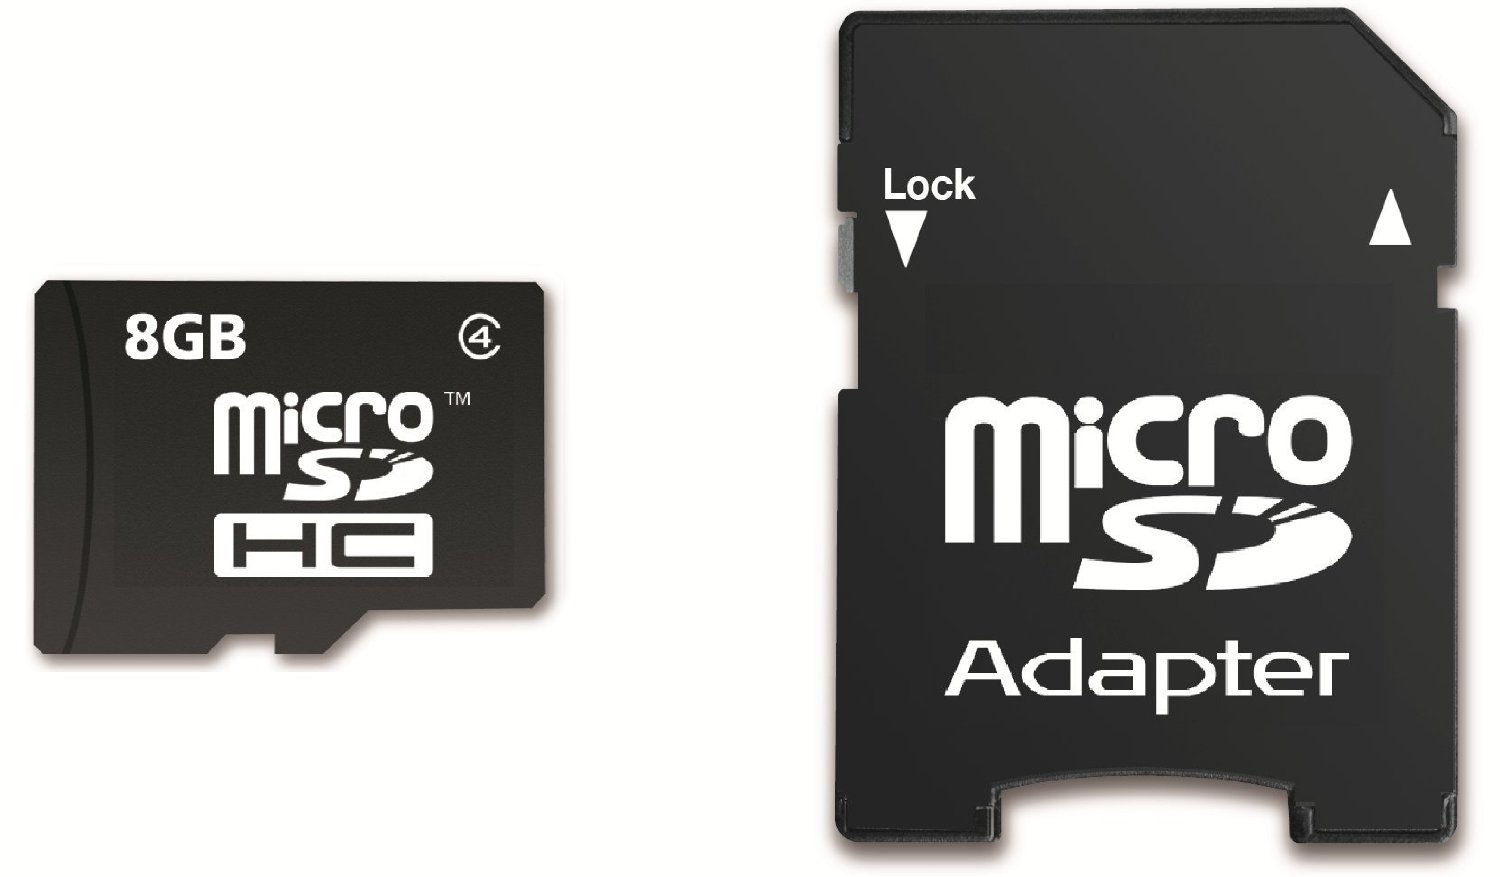 Shark 8GB Micro SD Memory Card for Garmin Nuvi